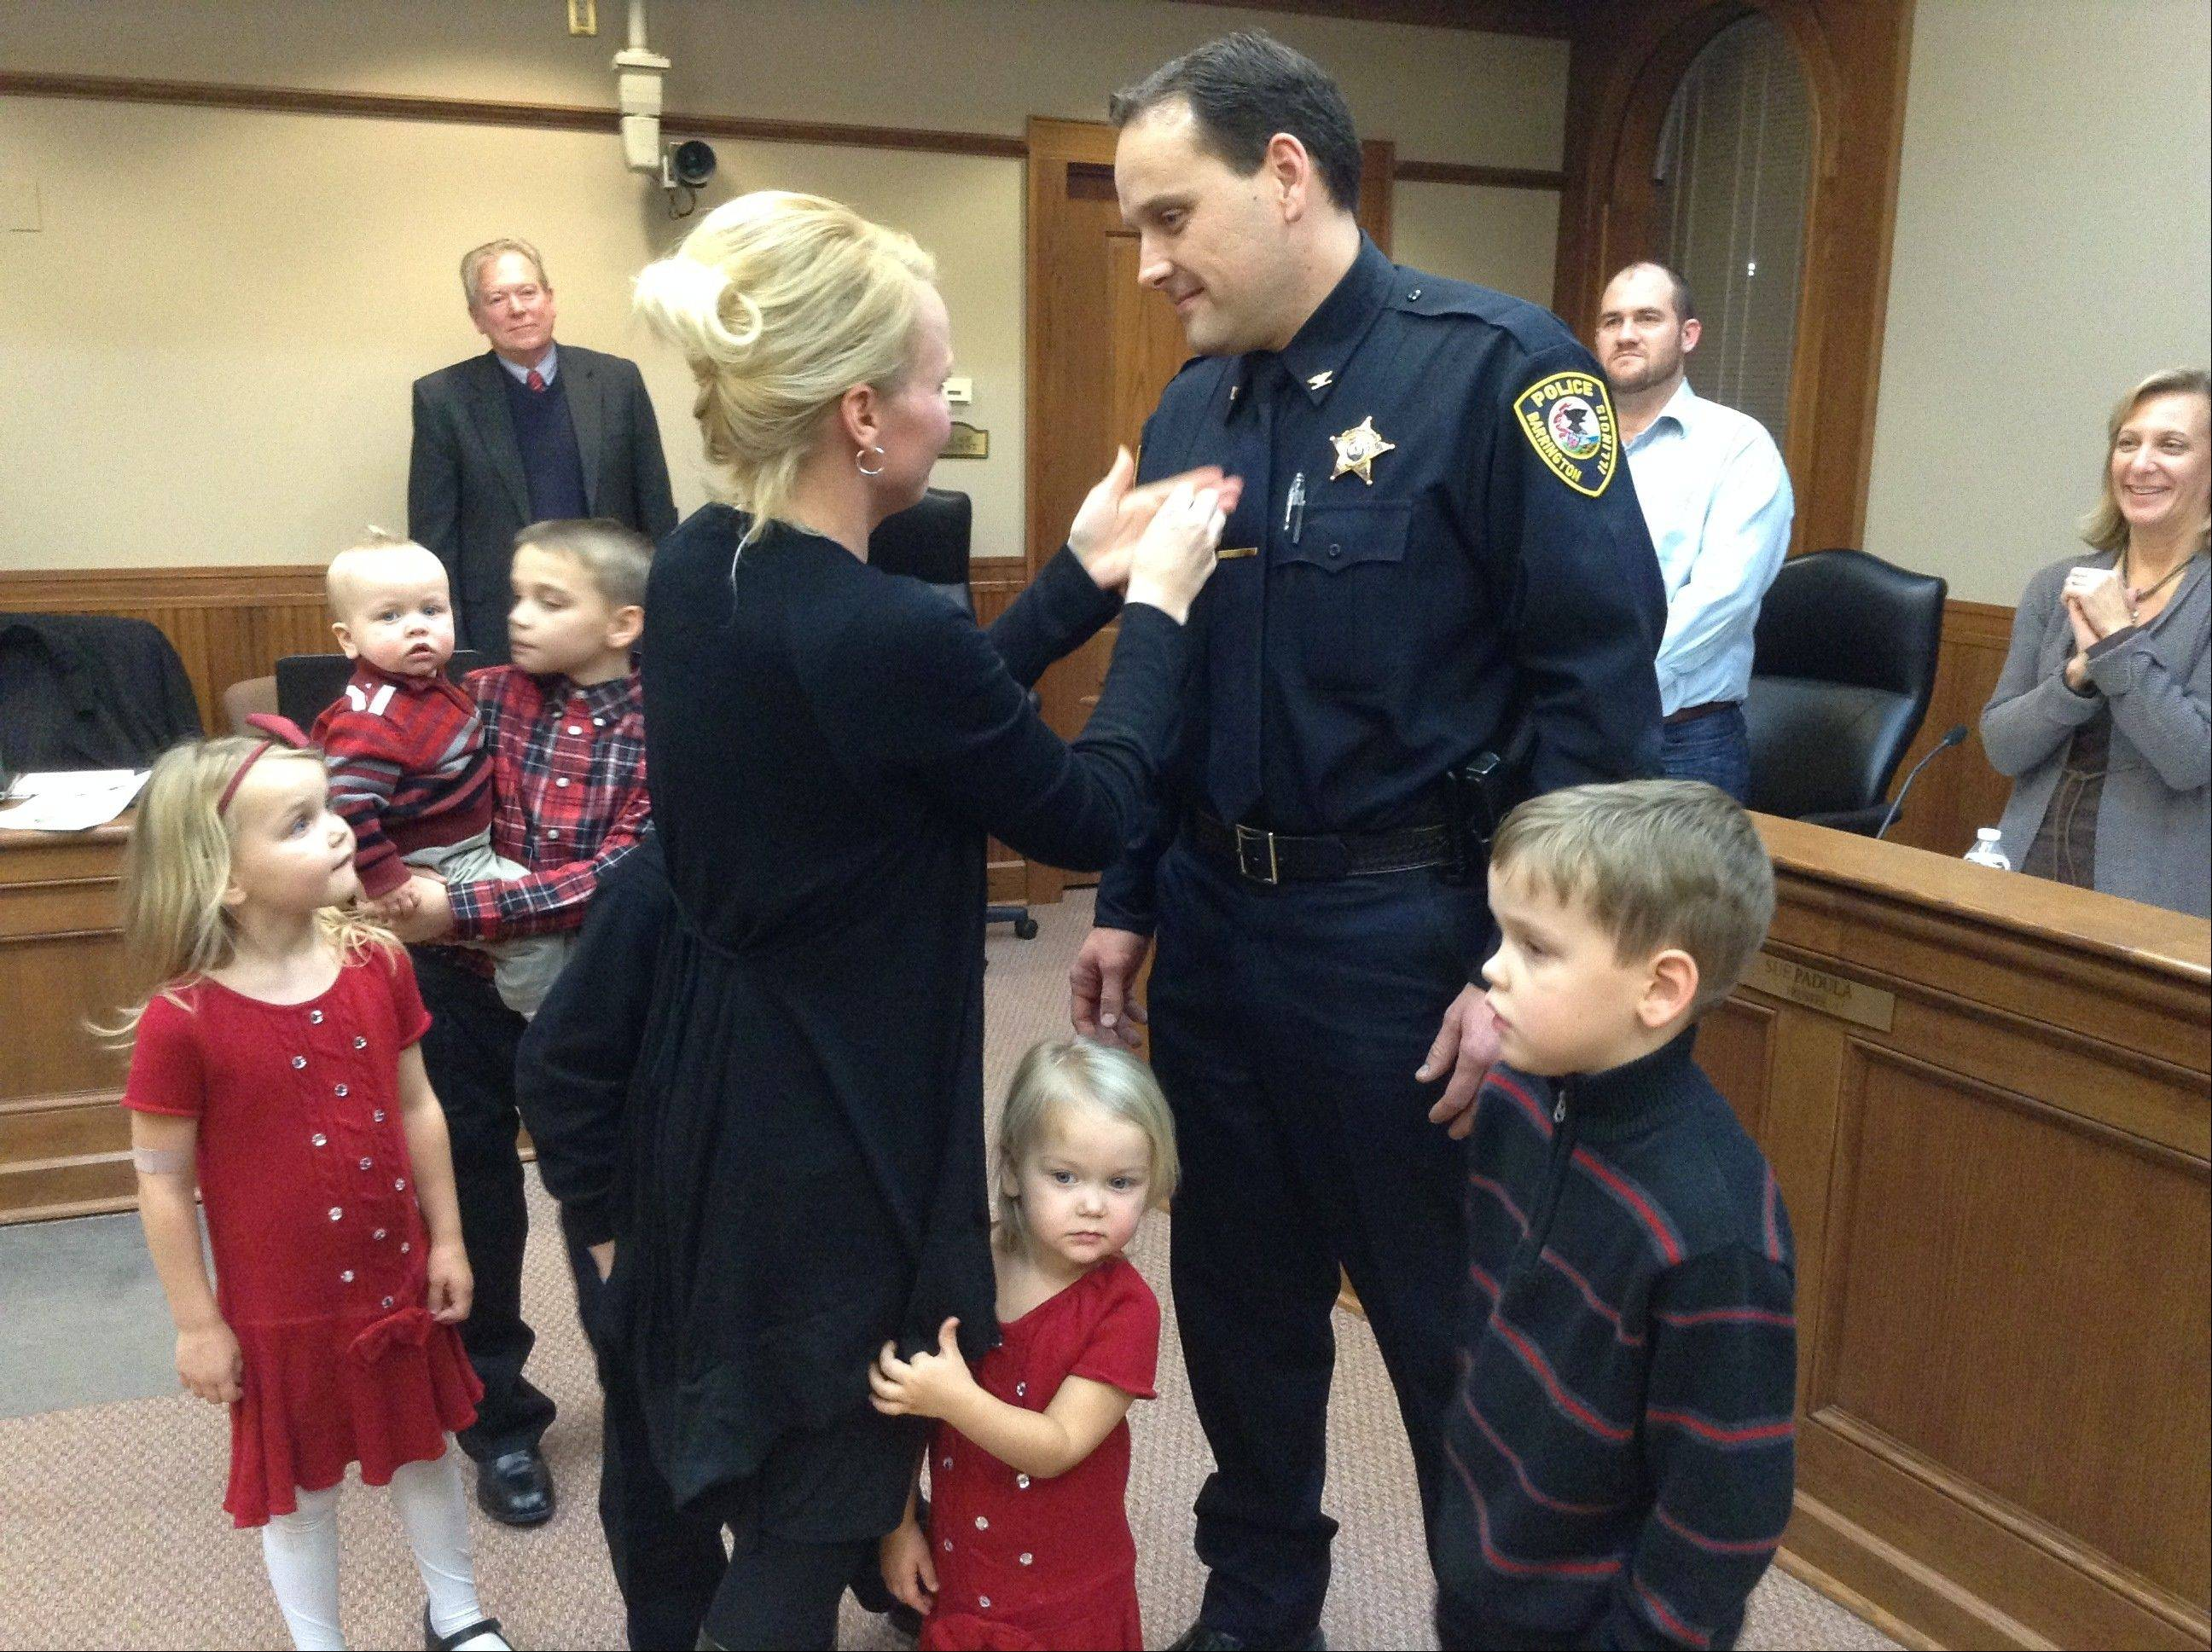 Barrington's new police chief, David Dorn, is pinned with his new rank by his wife Jennifer as their children and the Barrington village board looks on Monday night. Dorn, a 15-year department veteran, replaces former chief Jerry Libit, who retired in May.